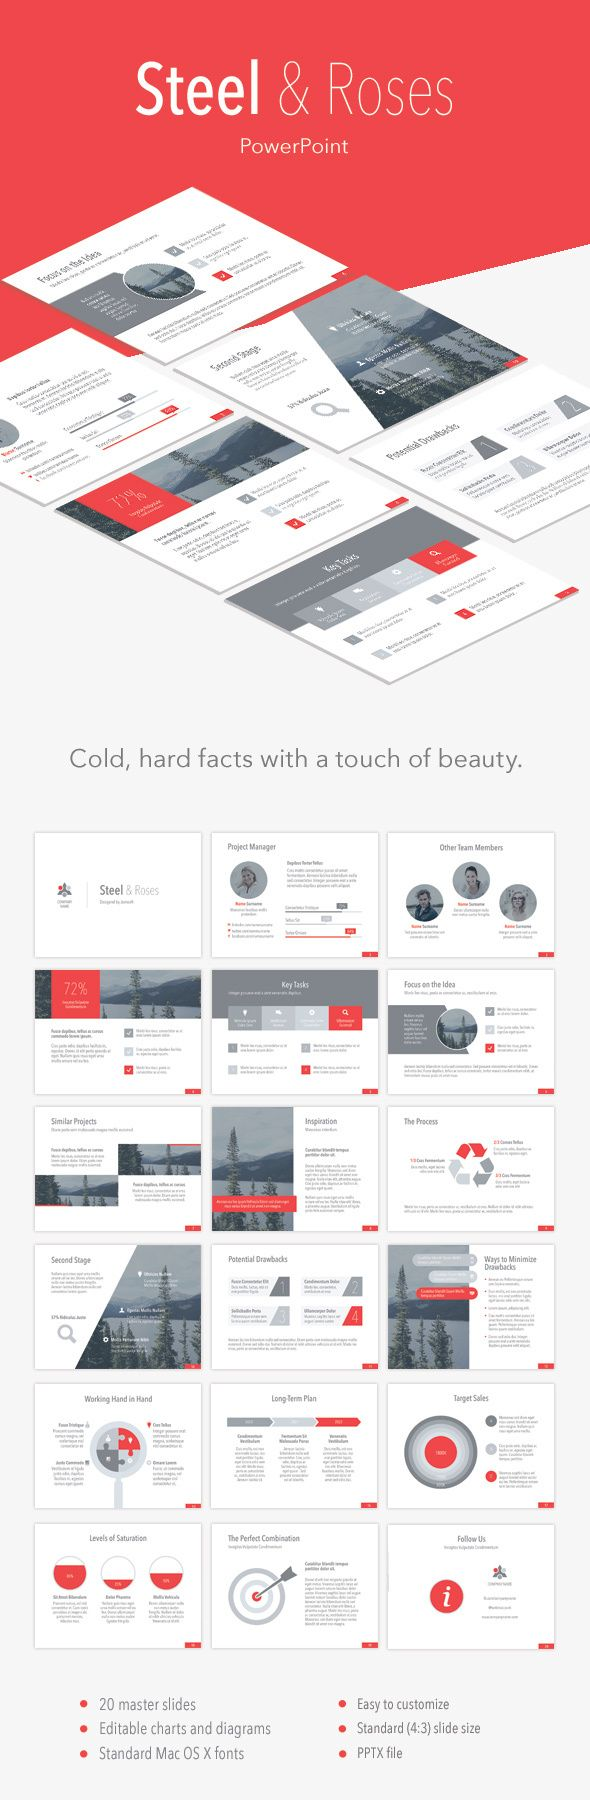 Steel & Roses PowerPoint Template (PowerPoint Templates)